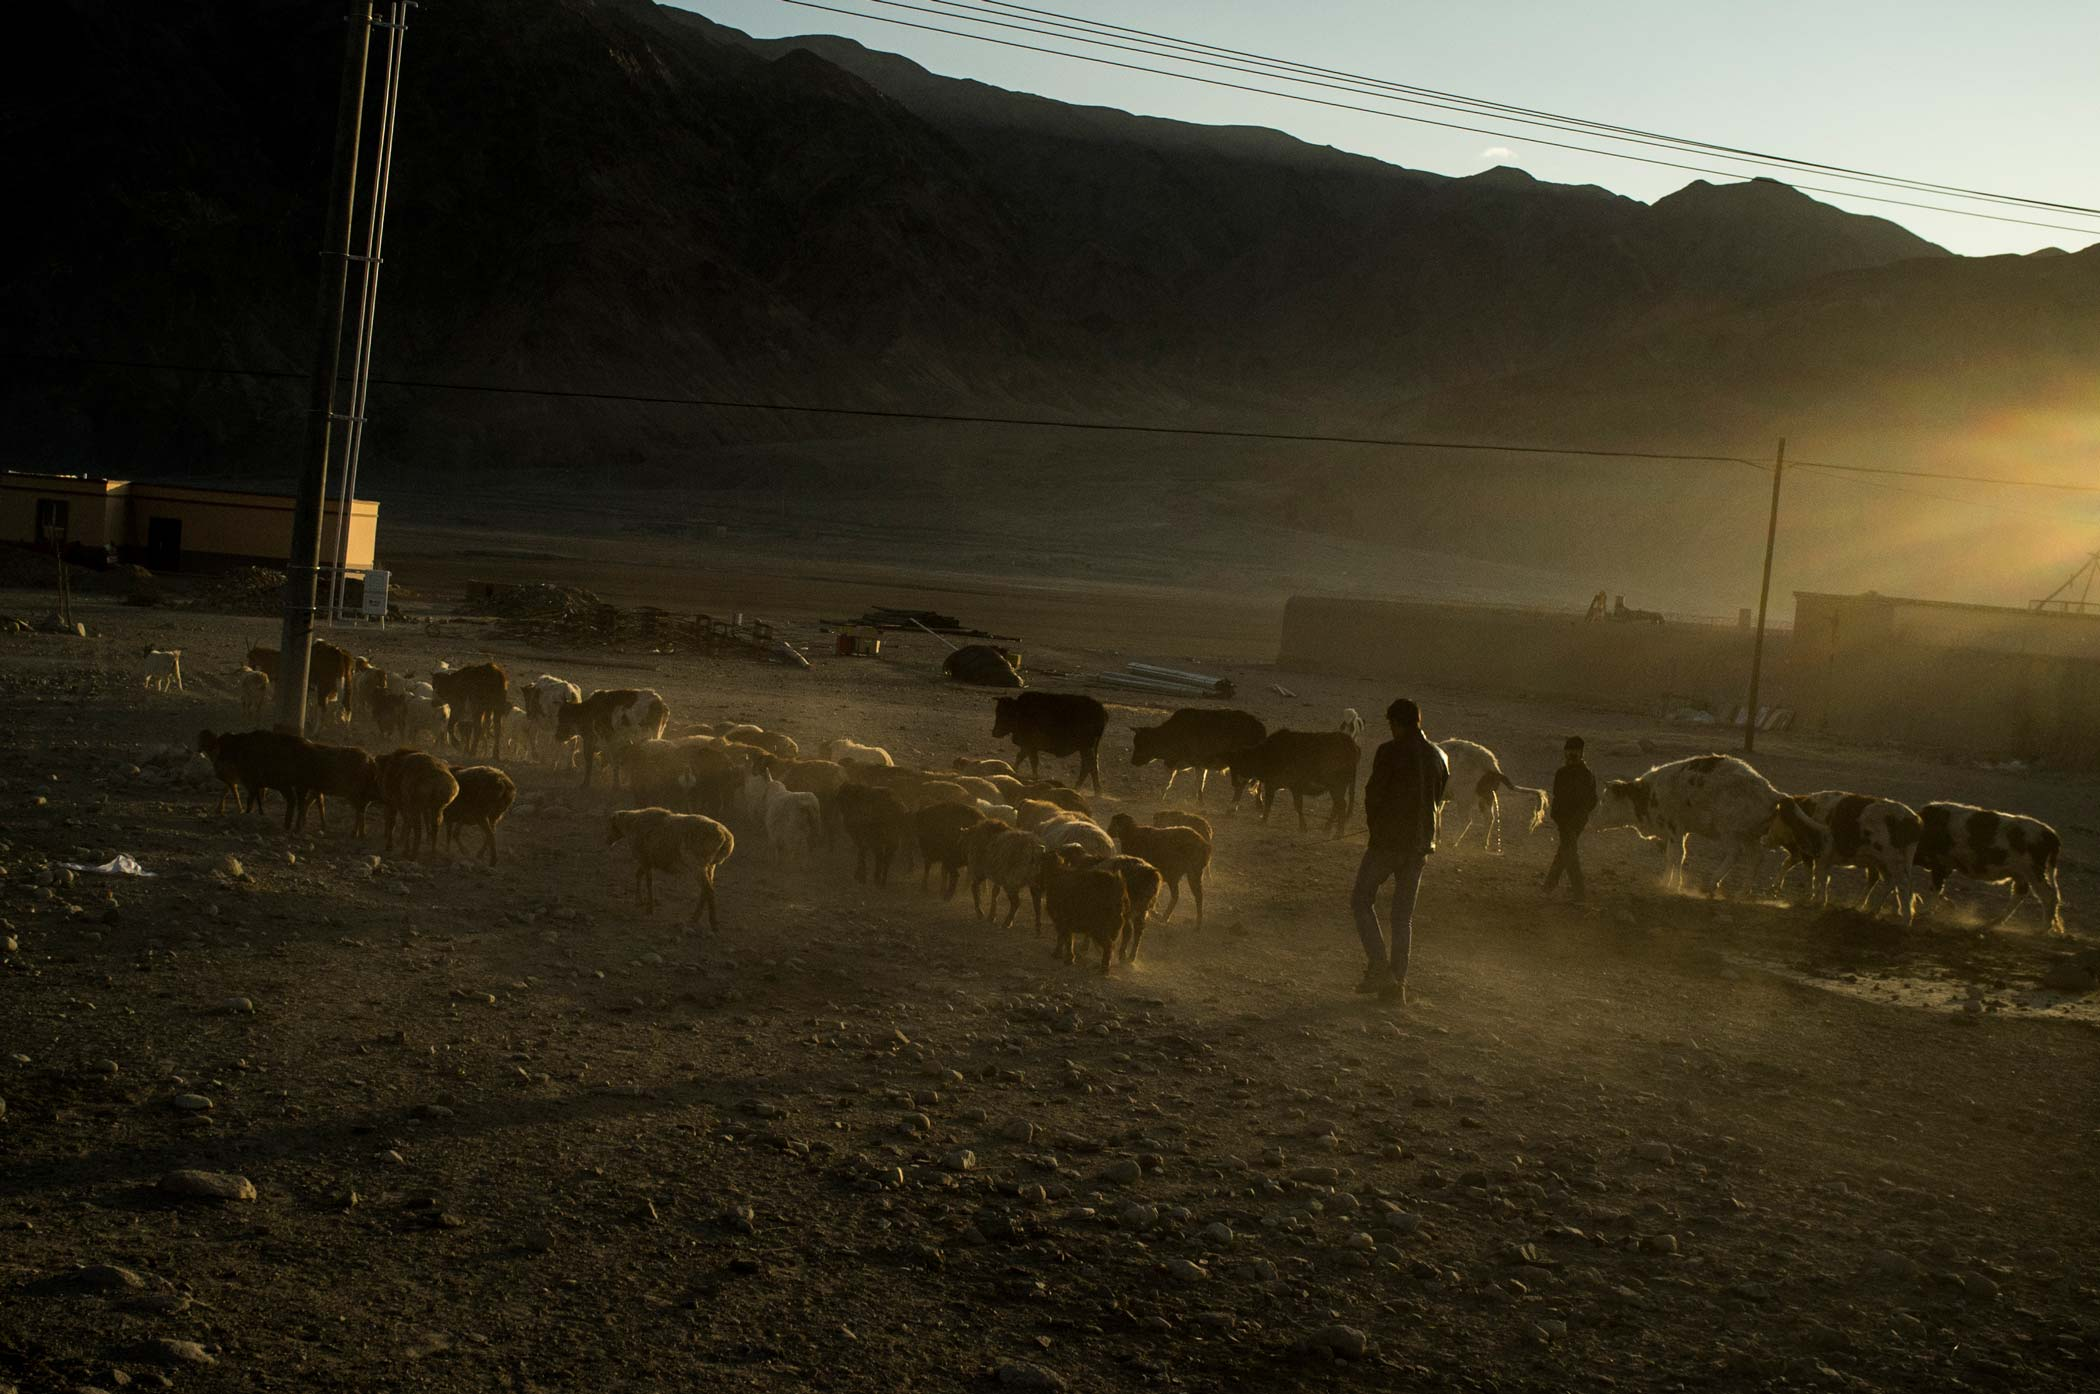 Men walk their sheep and cattle home, along a dusty road in Xinjiang, China.